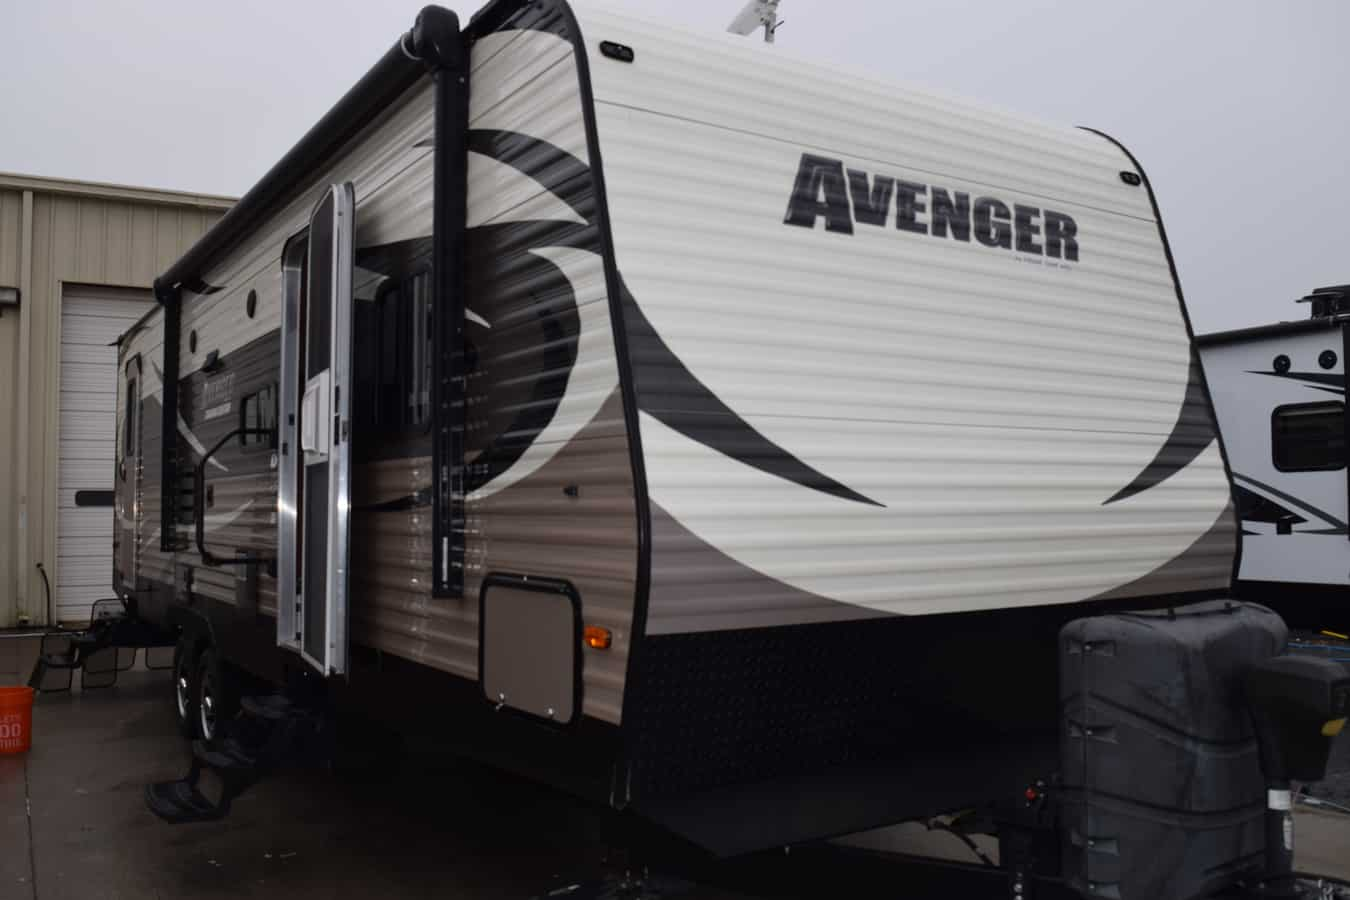 USED 2016 Prime Time AVENGER 28DBS - Three Way Campers